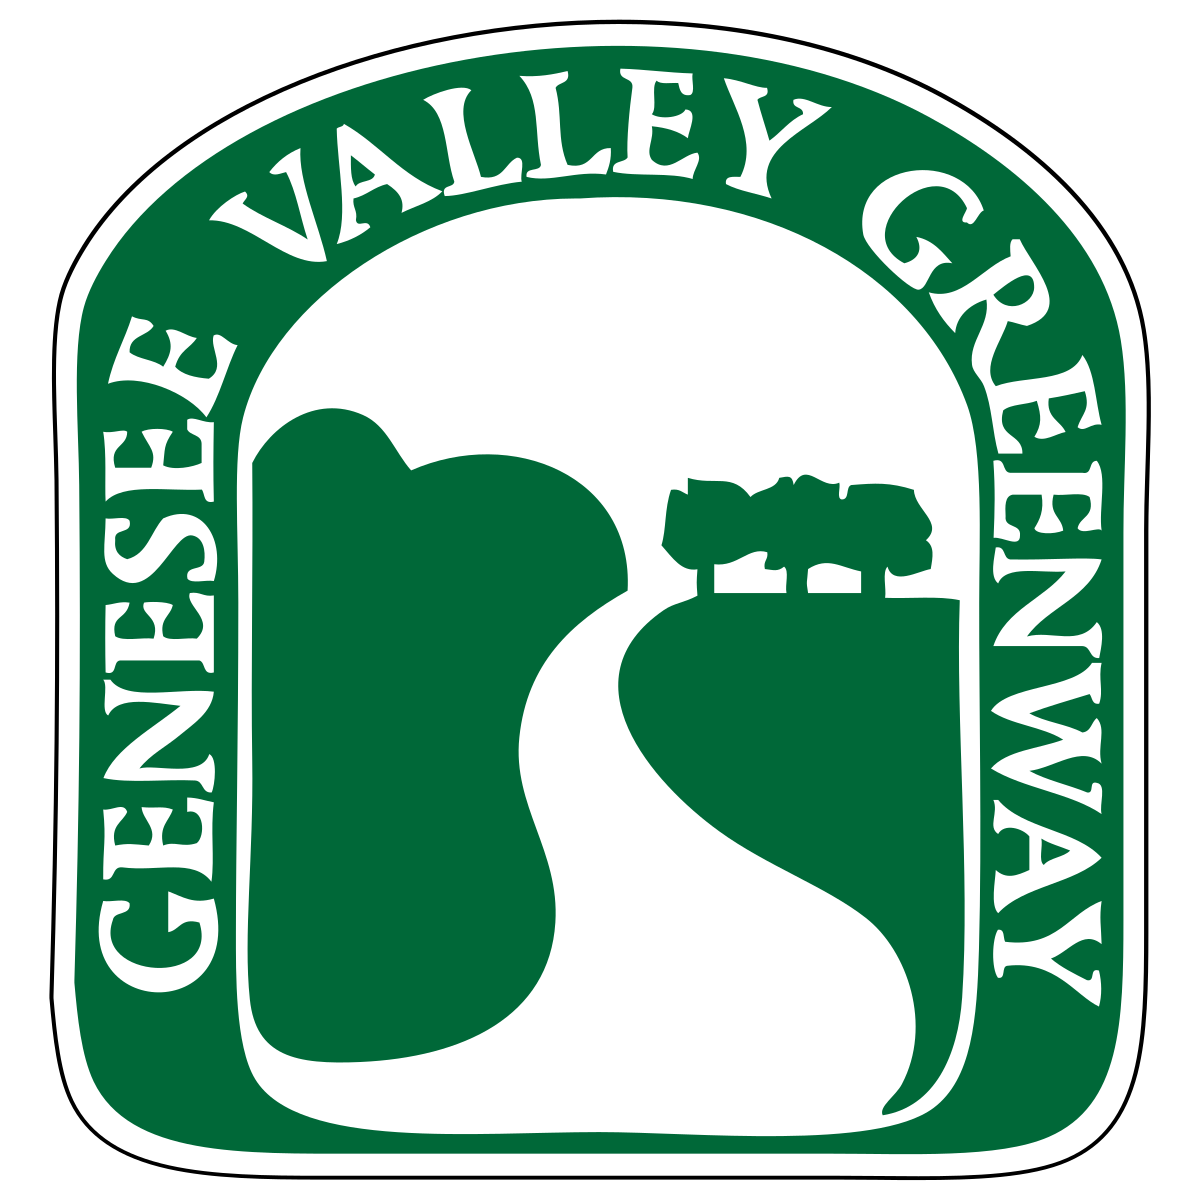 Genesee valley greenway wikipedia. Pathway clipart hilly road